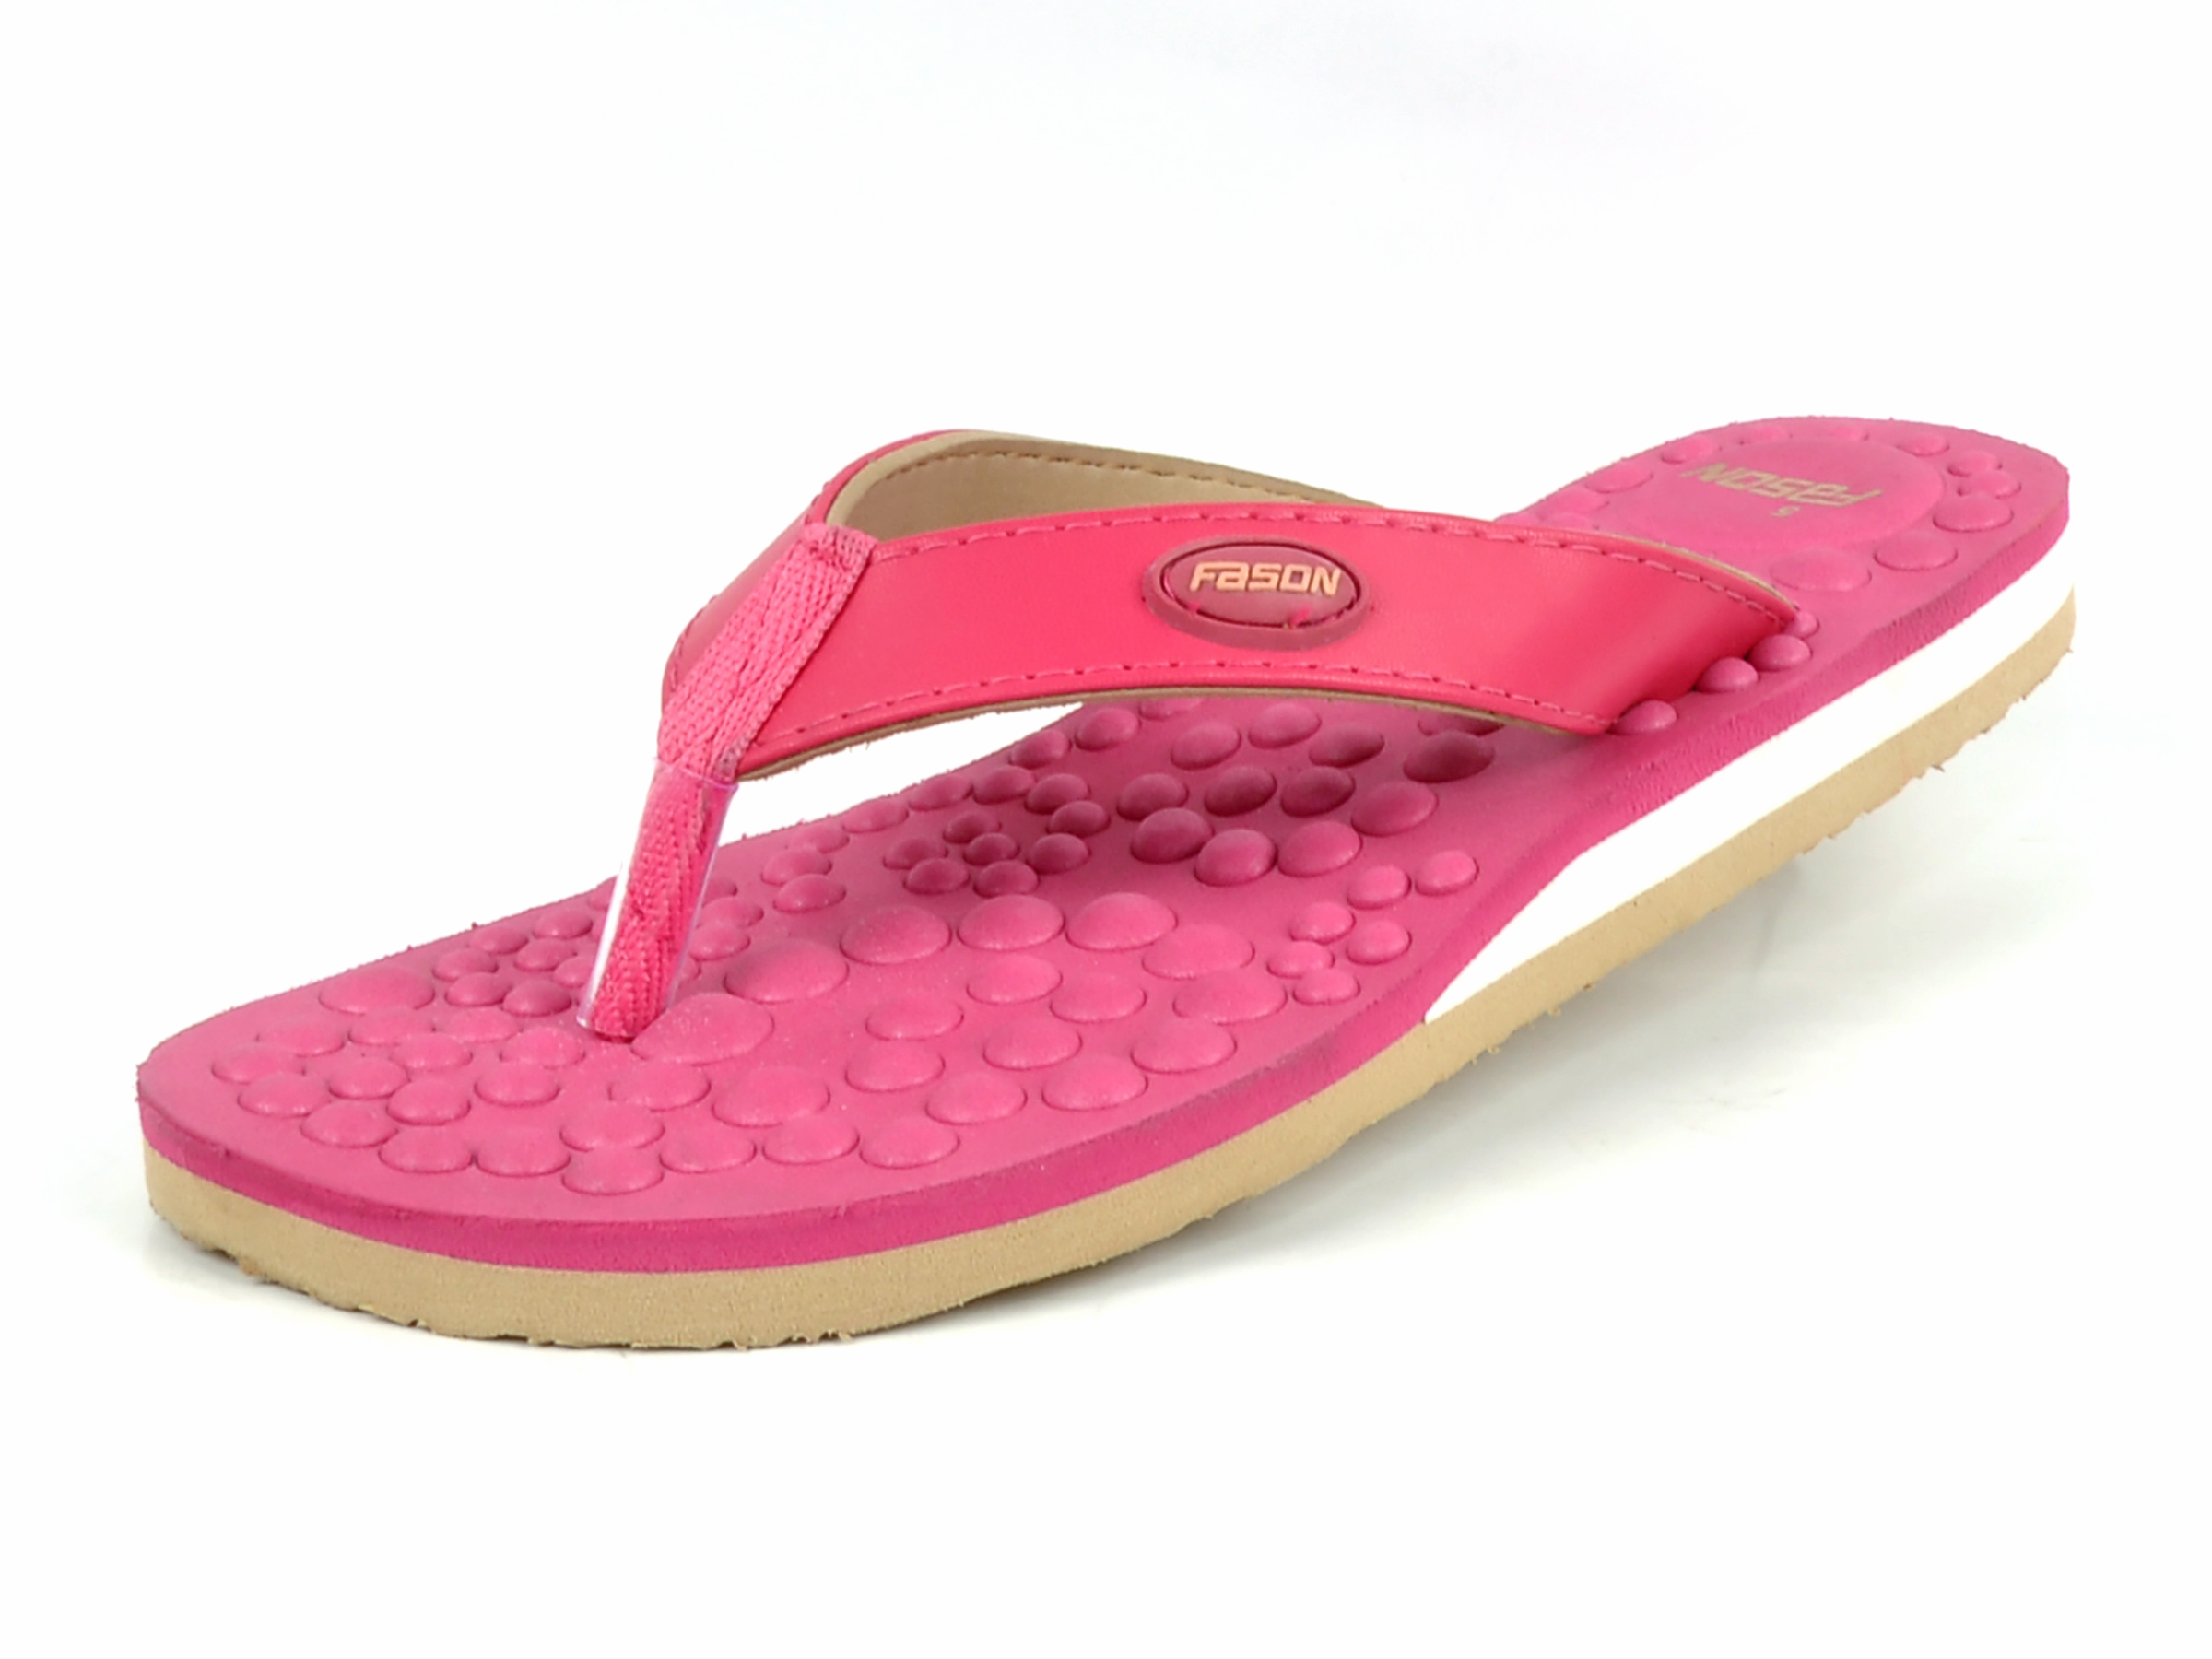 Ladies Pink Flip Flop slipper